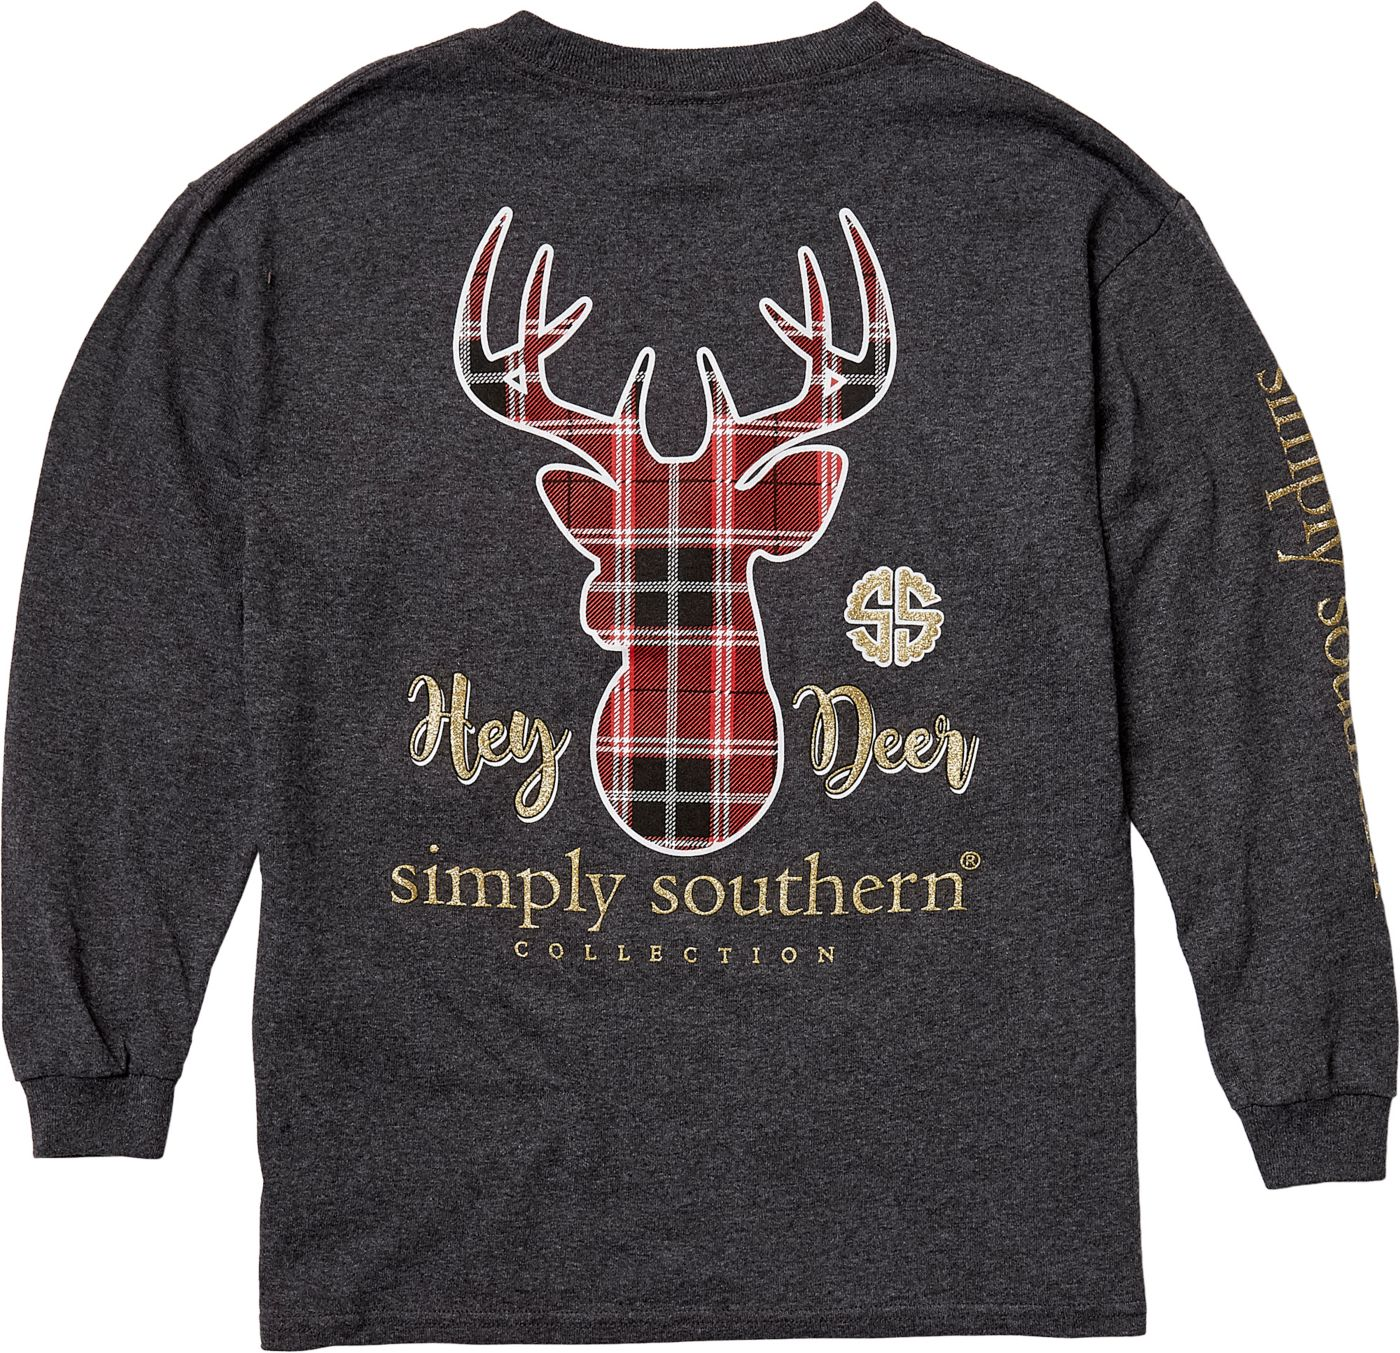 Simply Southern Girls' Hey Deer Long Sleeve Shirt